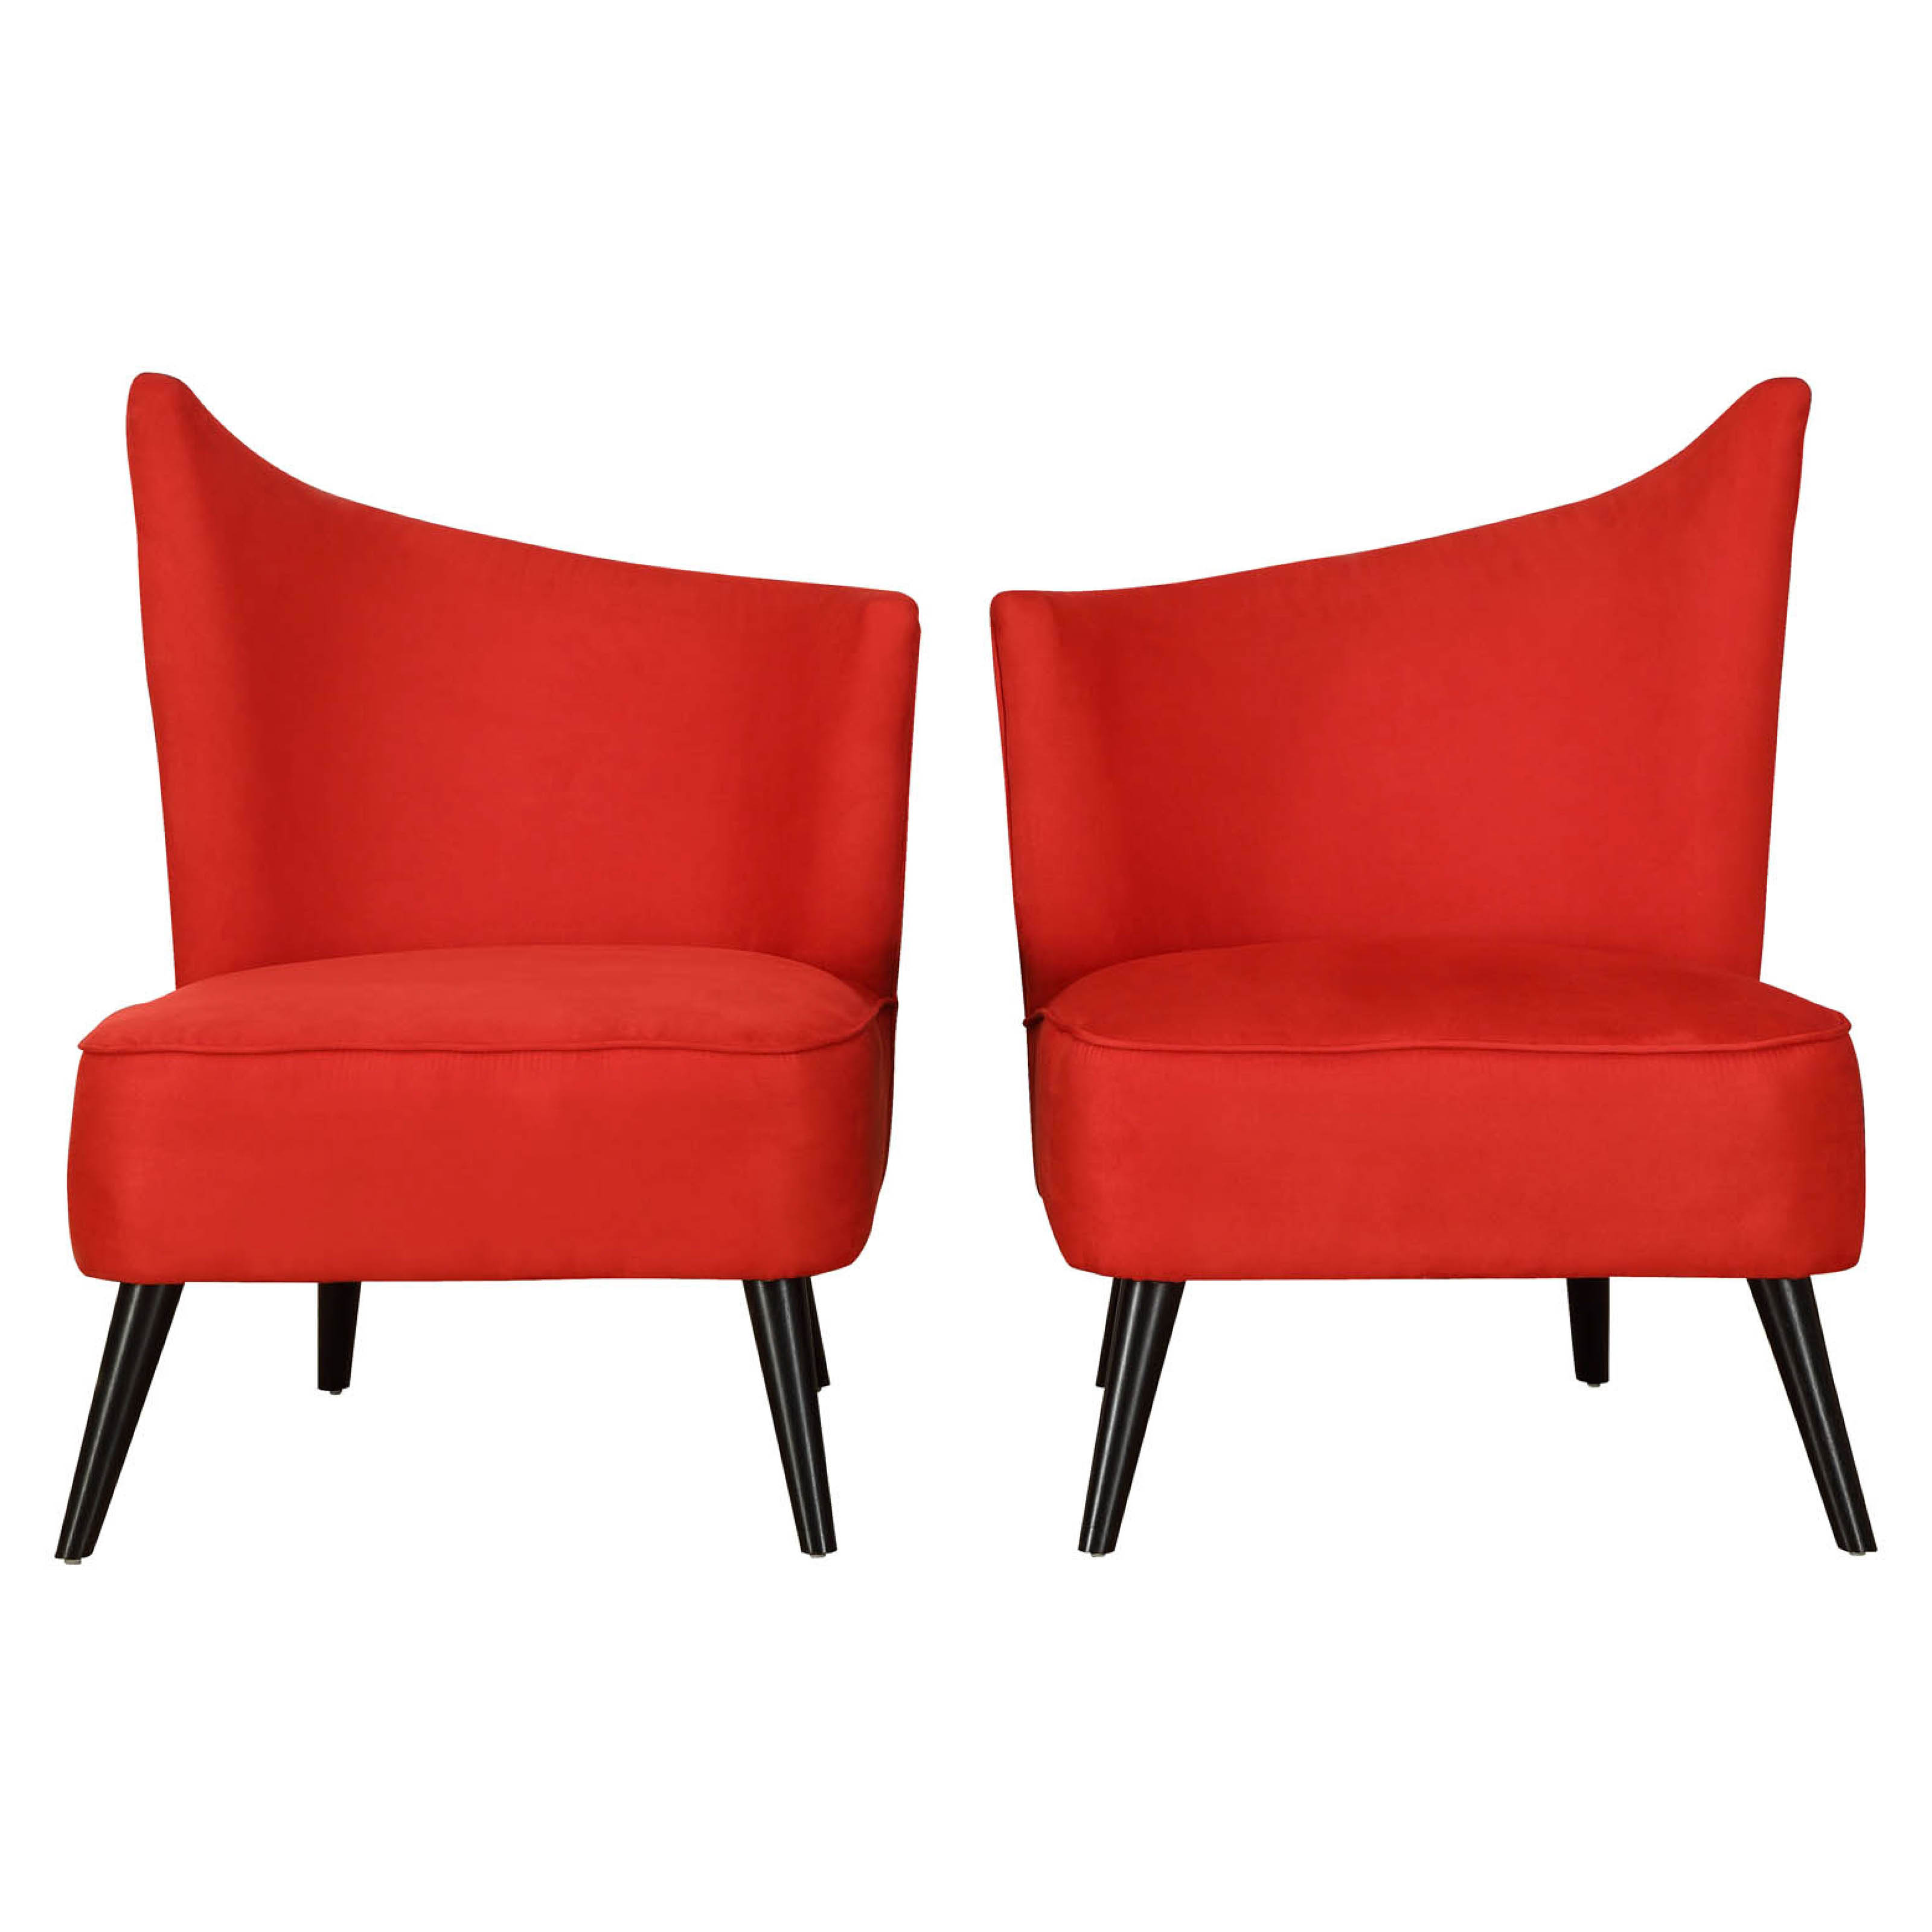 Pics s Red Accent Chairs For Living Room